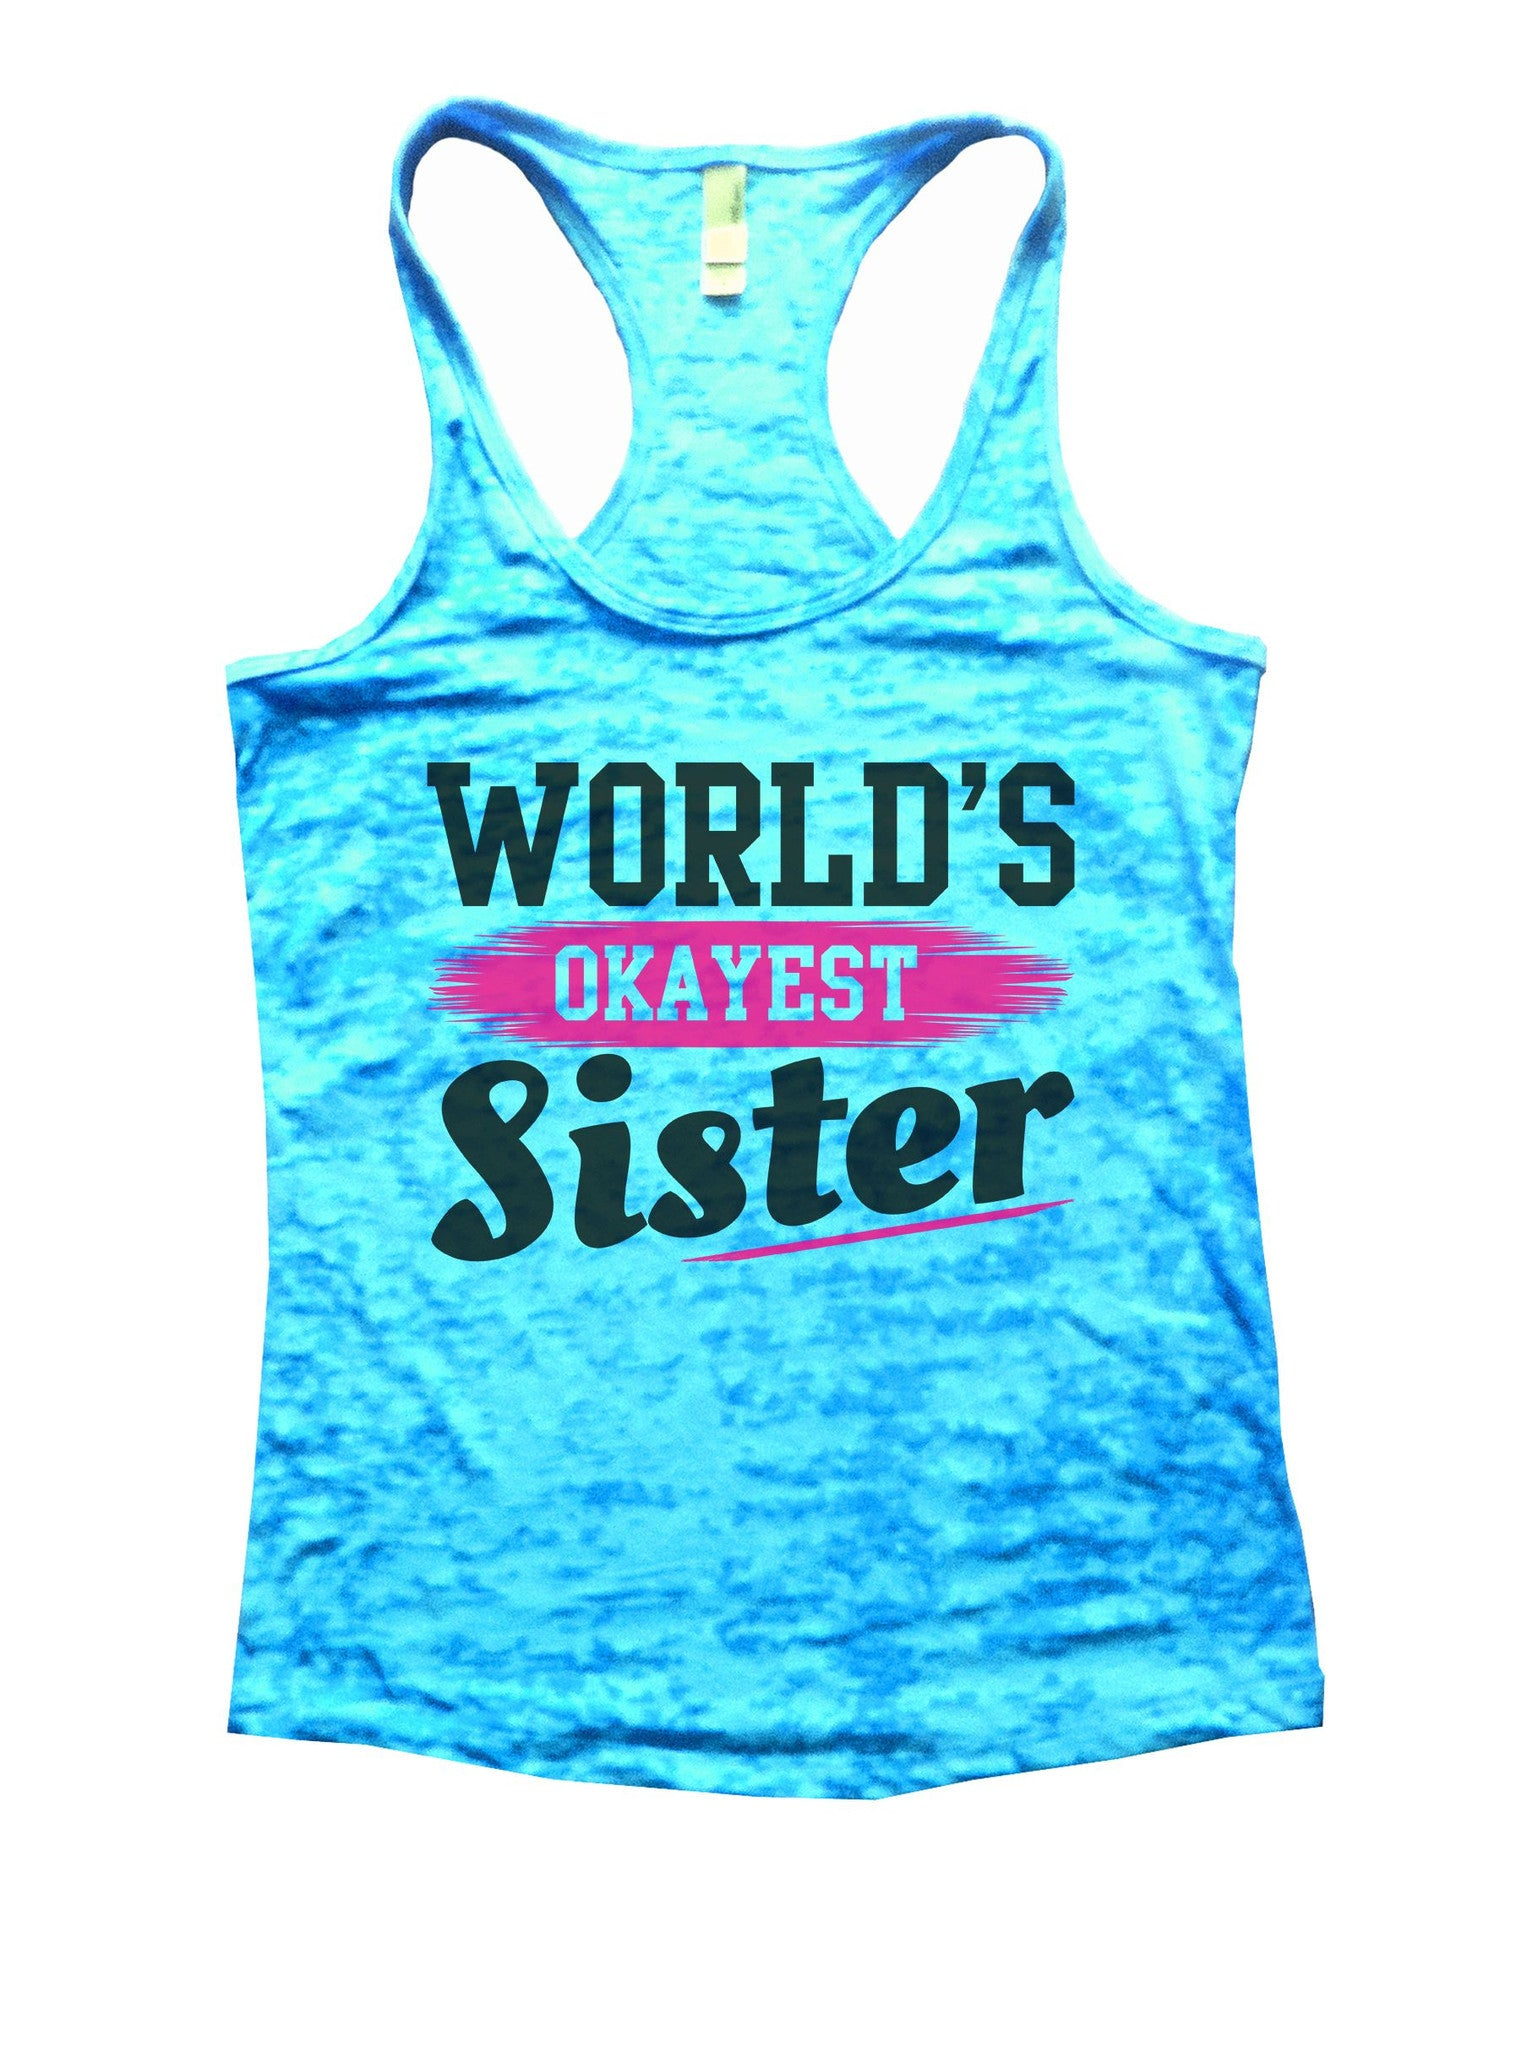 World's Okayest Sister Burnout Tank Top By BurnoutTankTops.com - 1033 - Funny Shirts Tank Tops Burnouts and Triblends  - 4